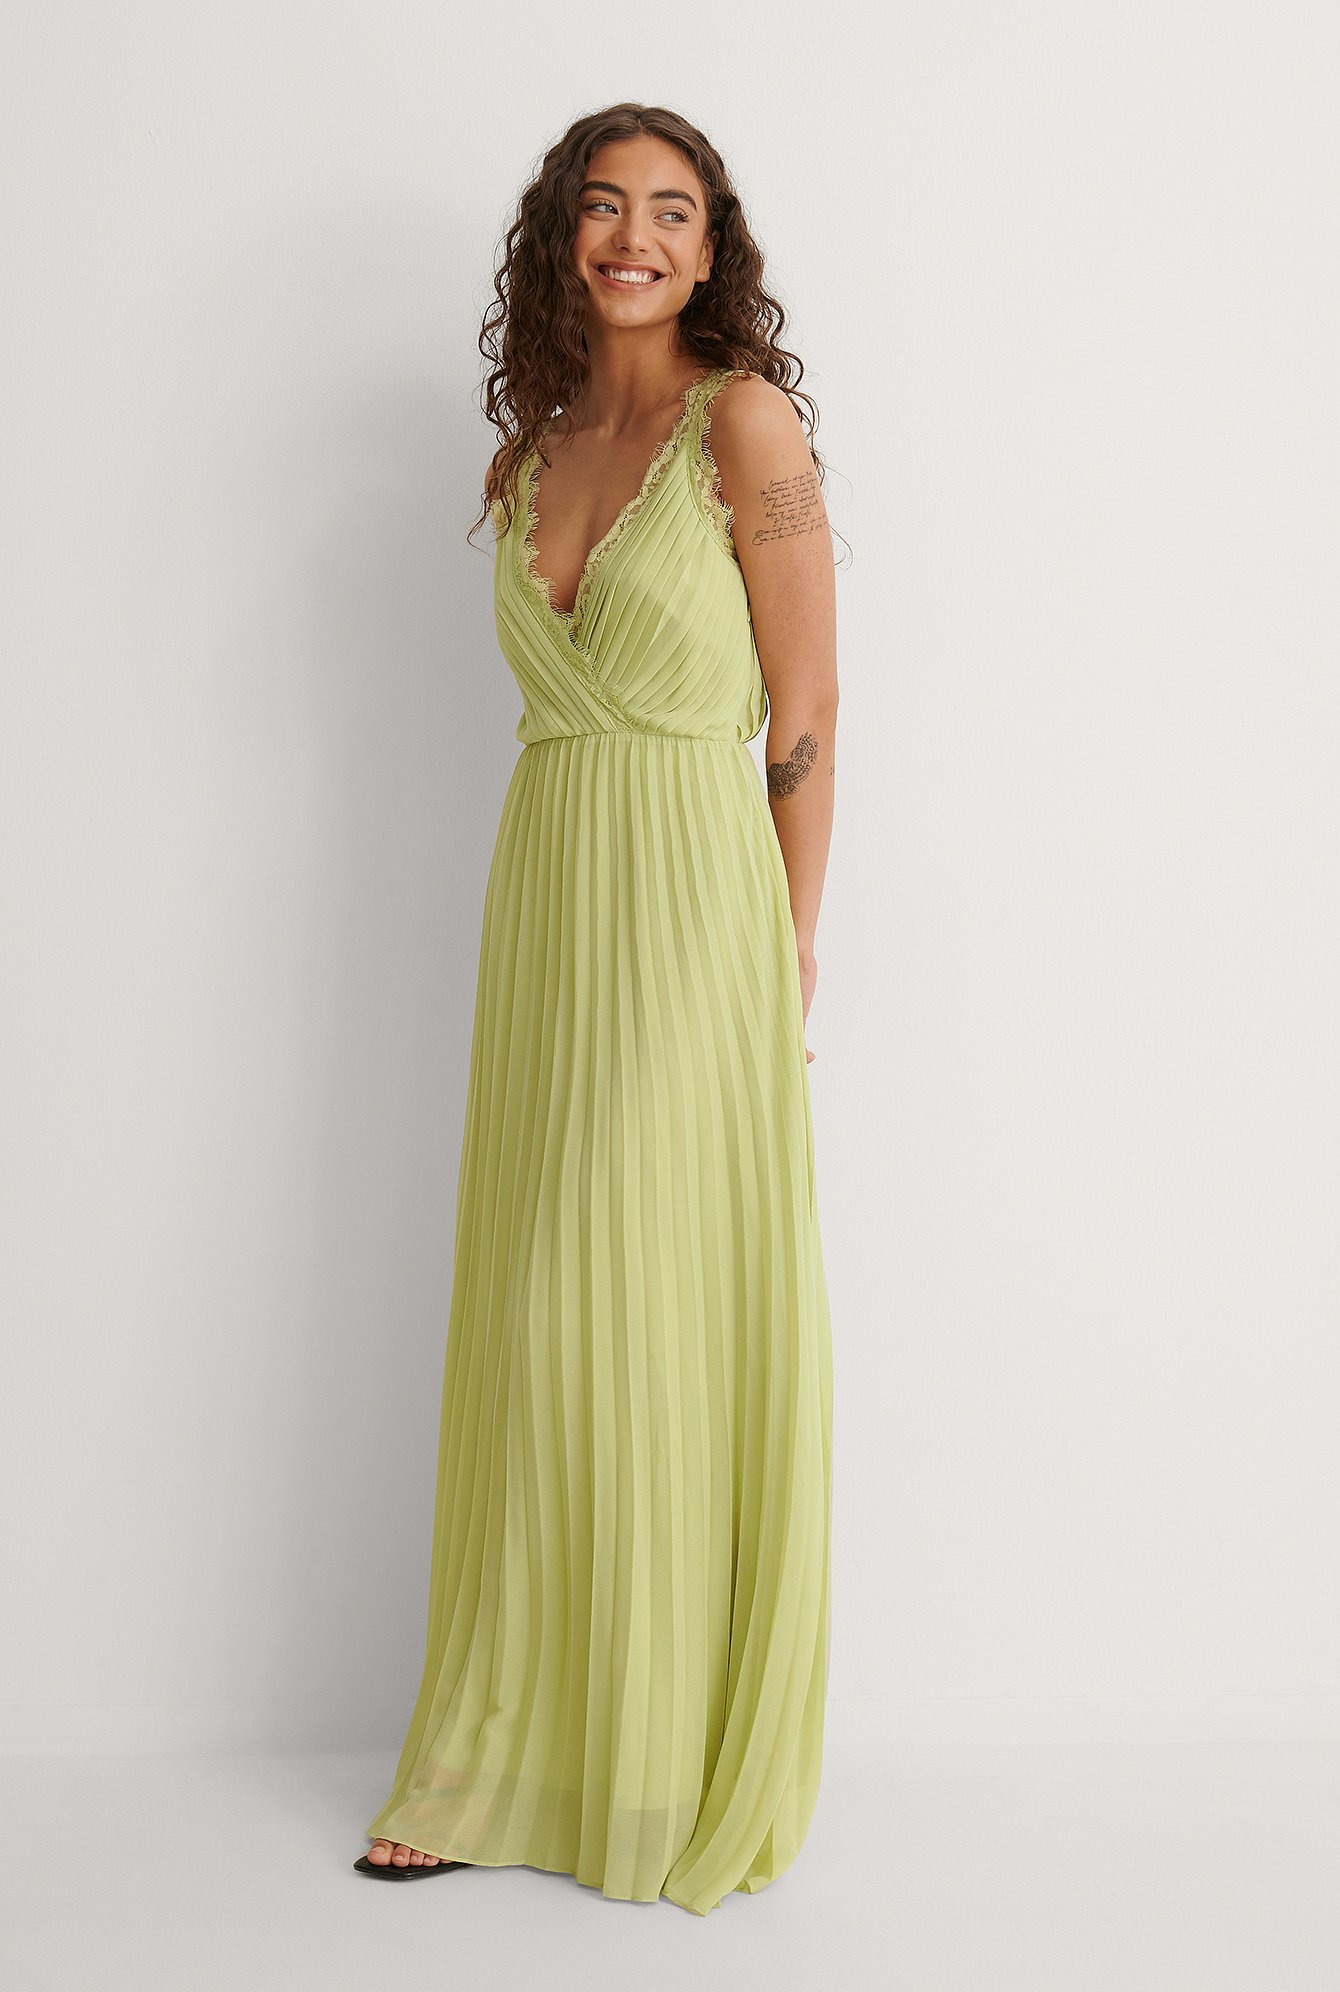 Dusty Green Chiffon Volume Maxi Dress